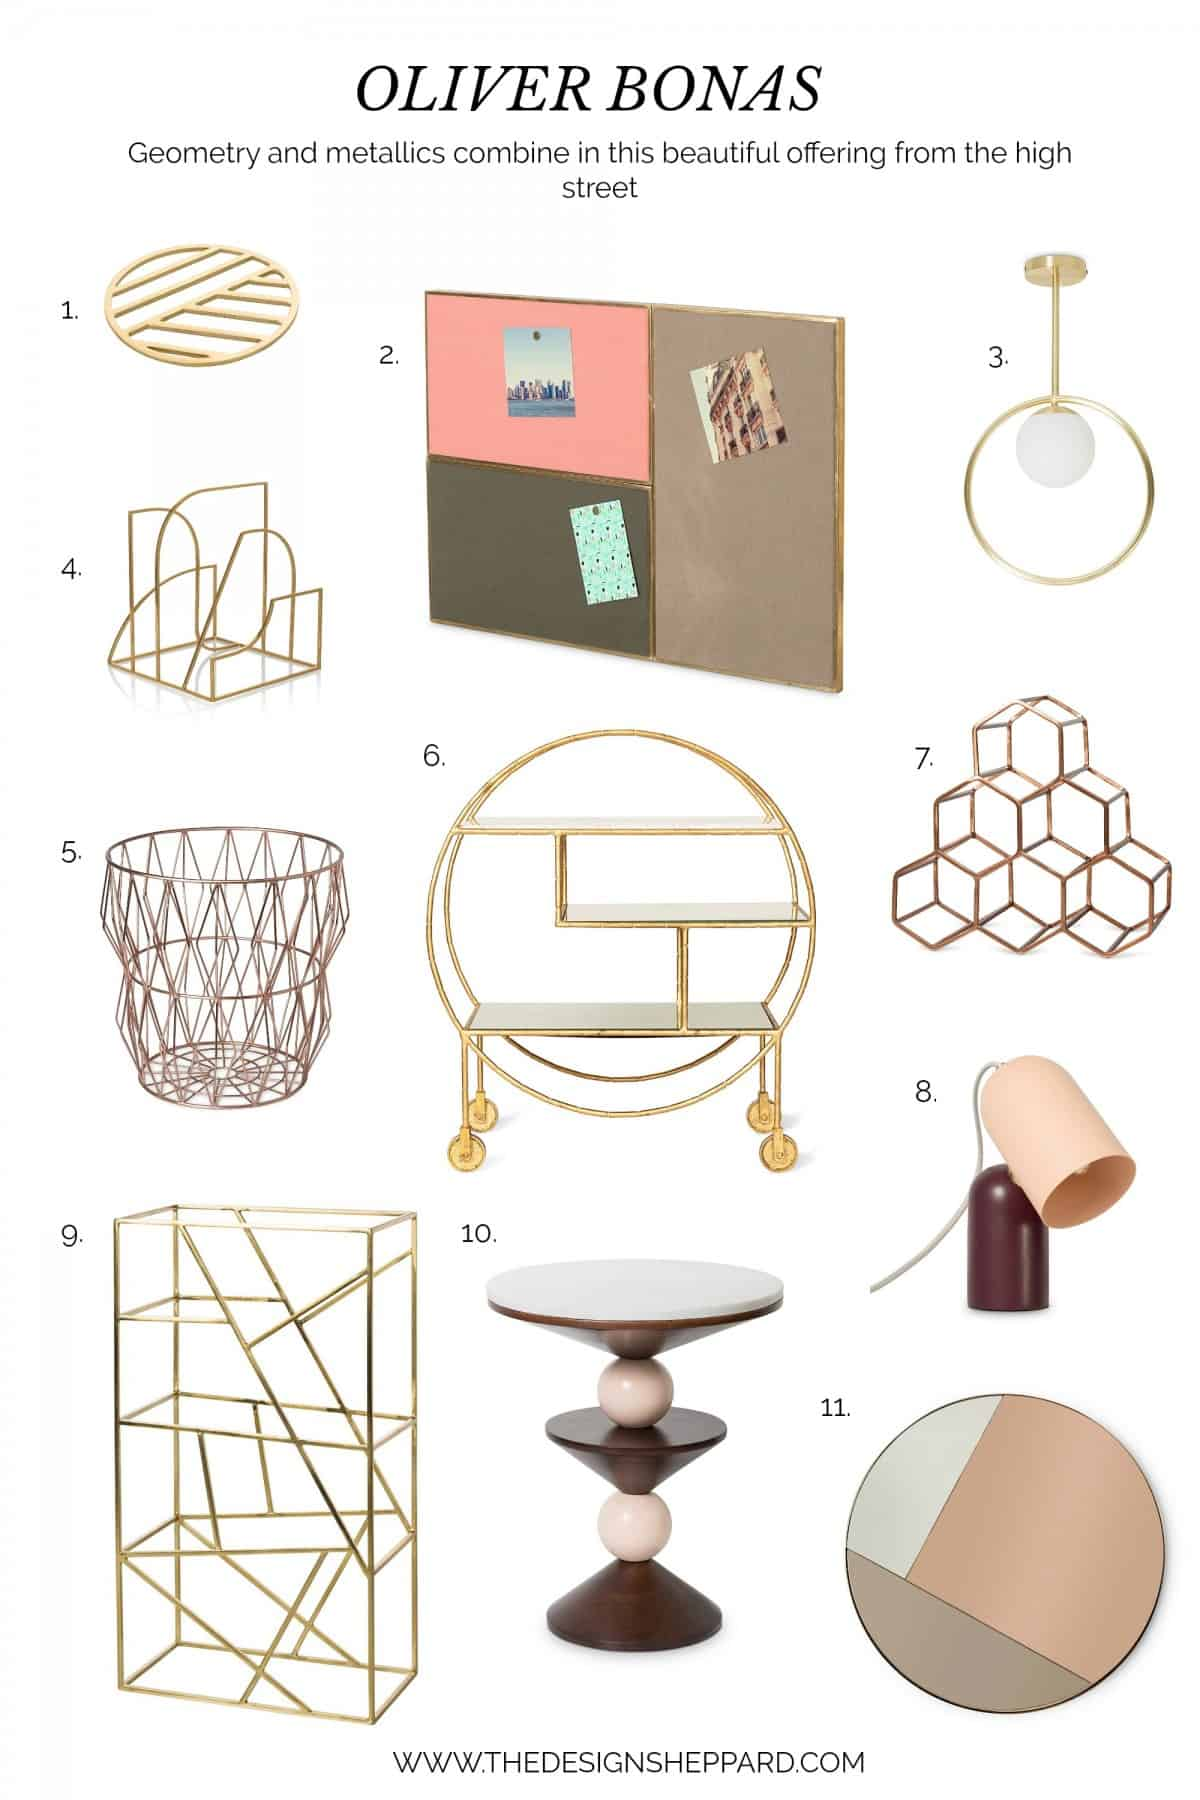 OLIVER BONAS geometric and metallic home interior products